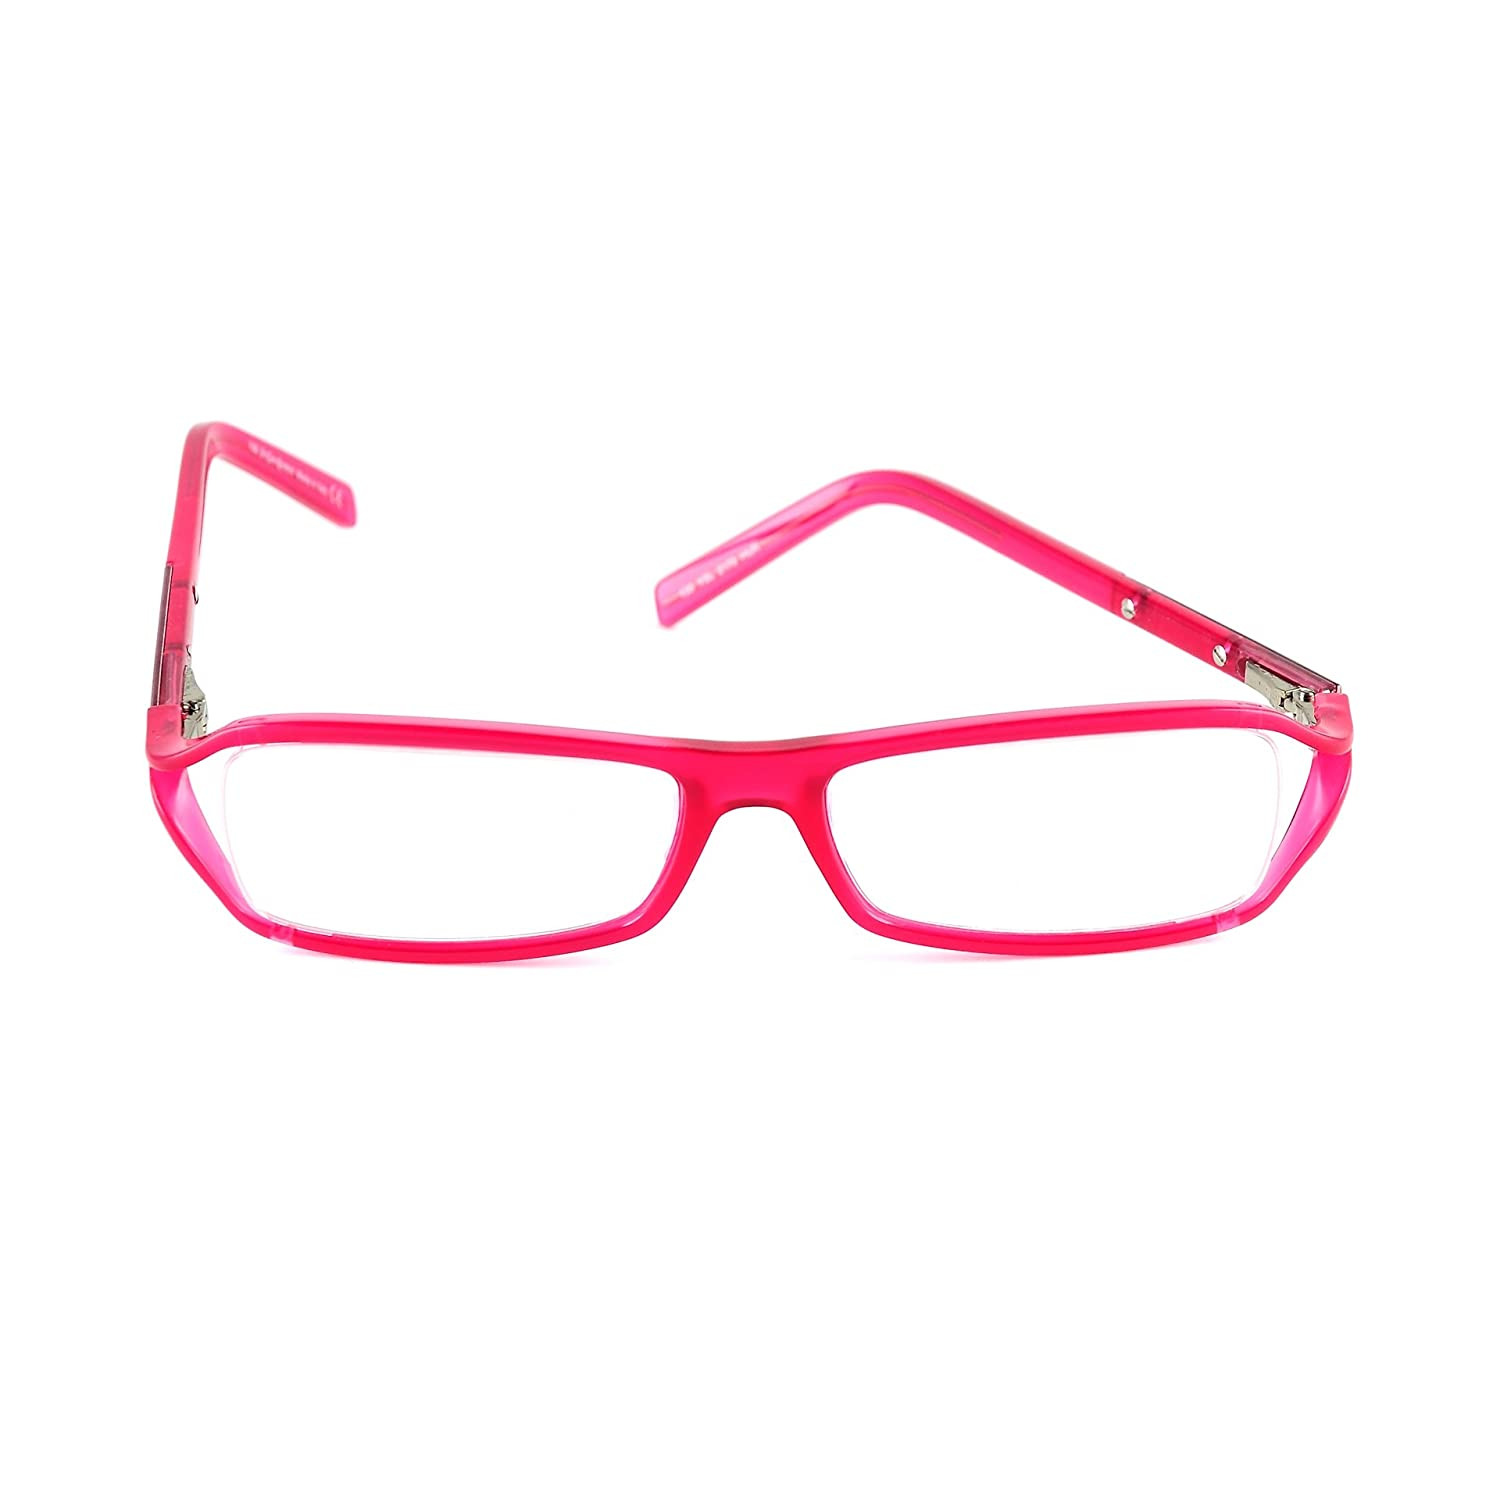 Yves Saint Laurent Eyeglasses Mod. YSL 2178 Col. HUR (pink) 53-15-130 Made in Italy